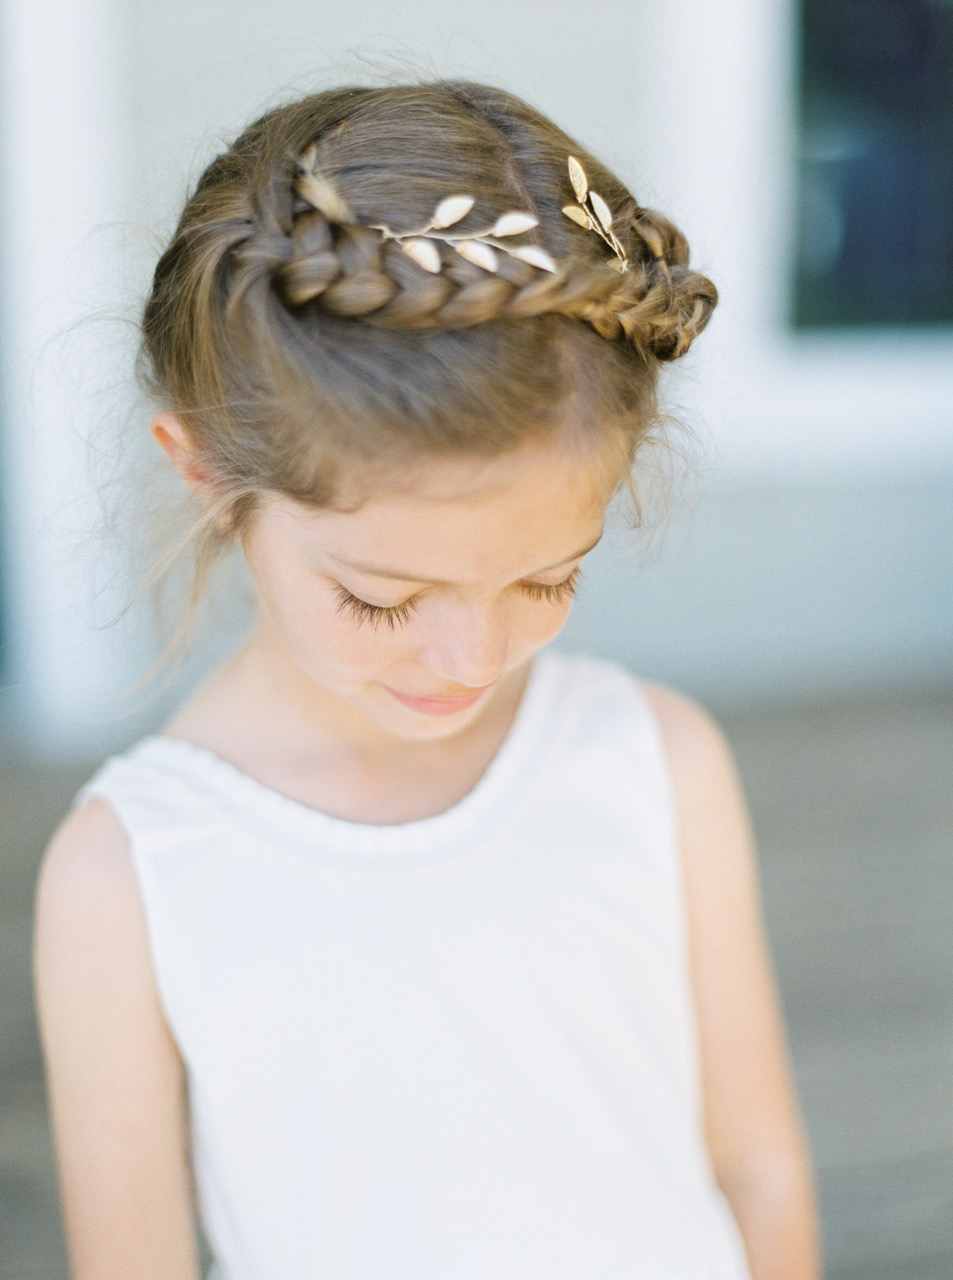 Flower Girl Hairstyle Crown Braid with Gold Leaves